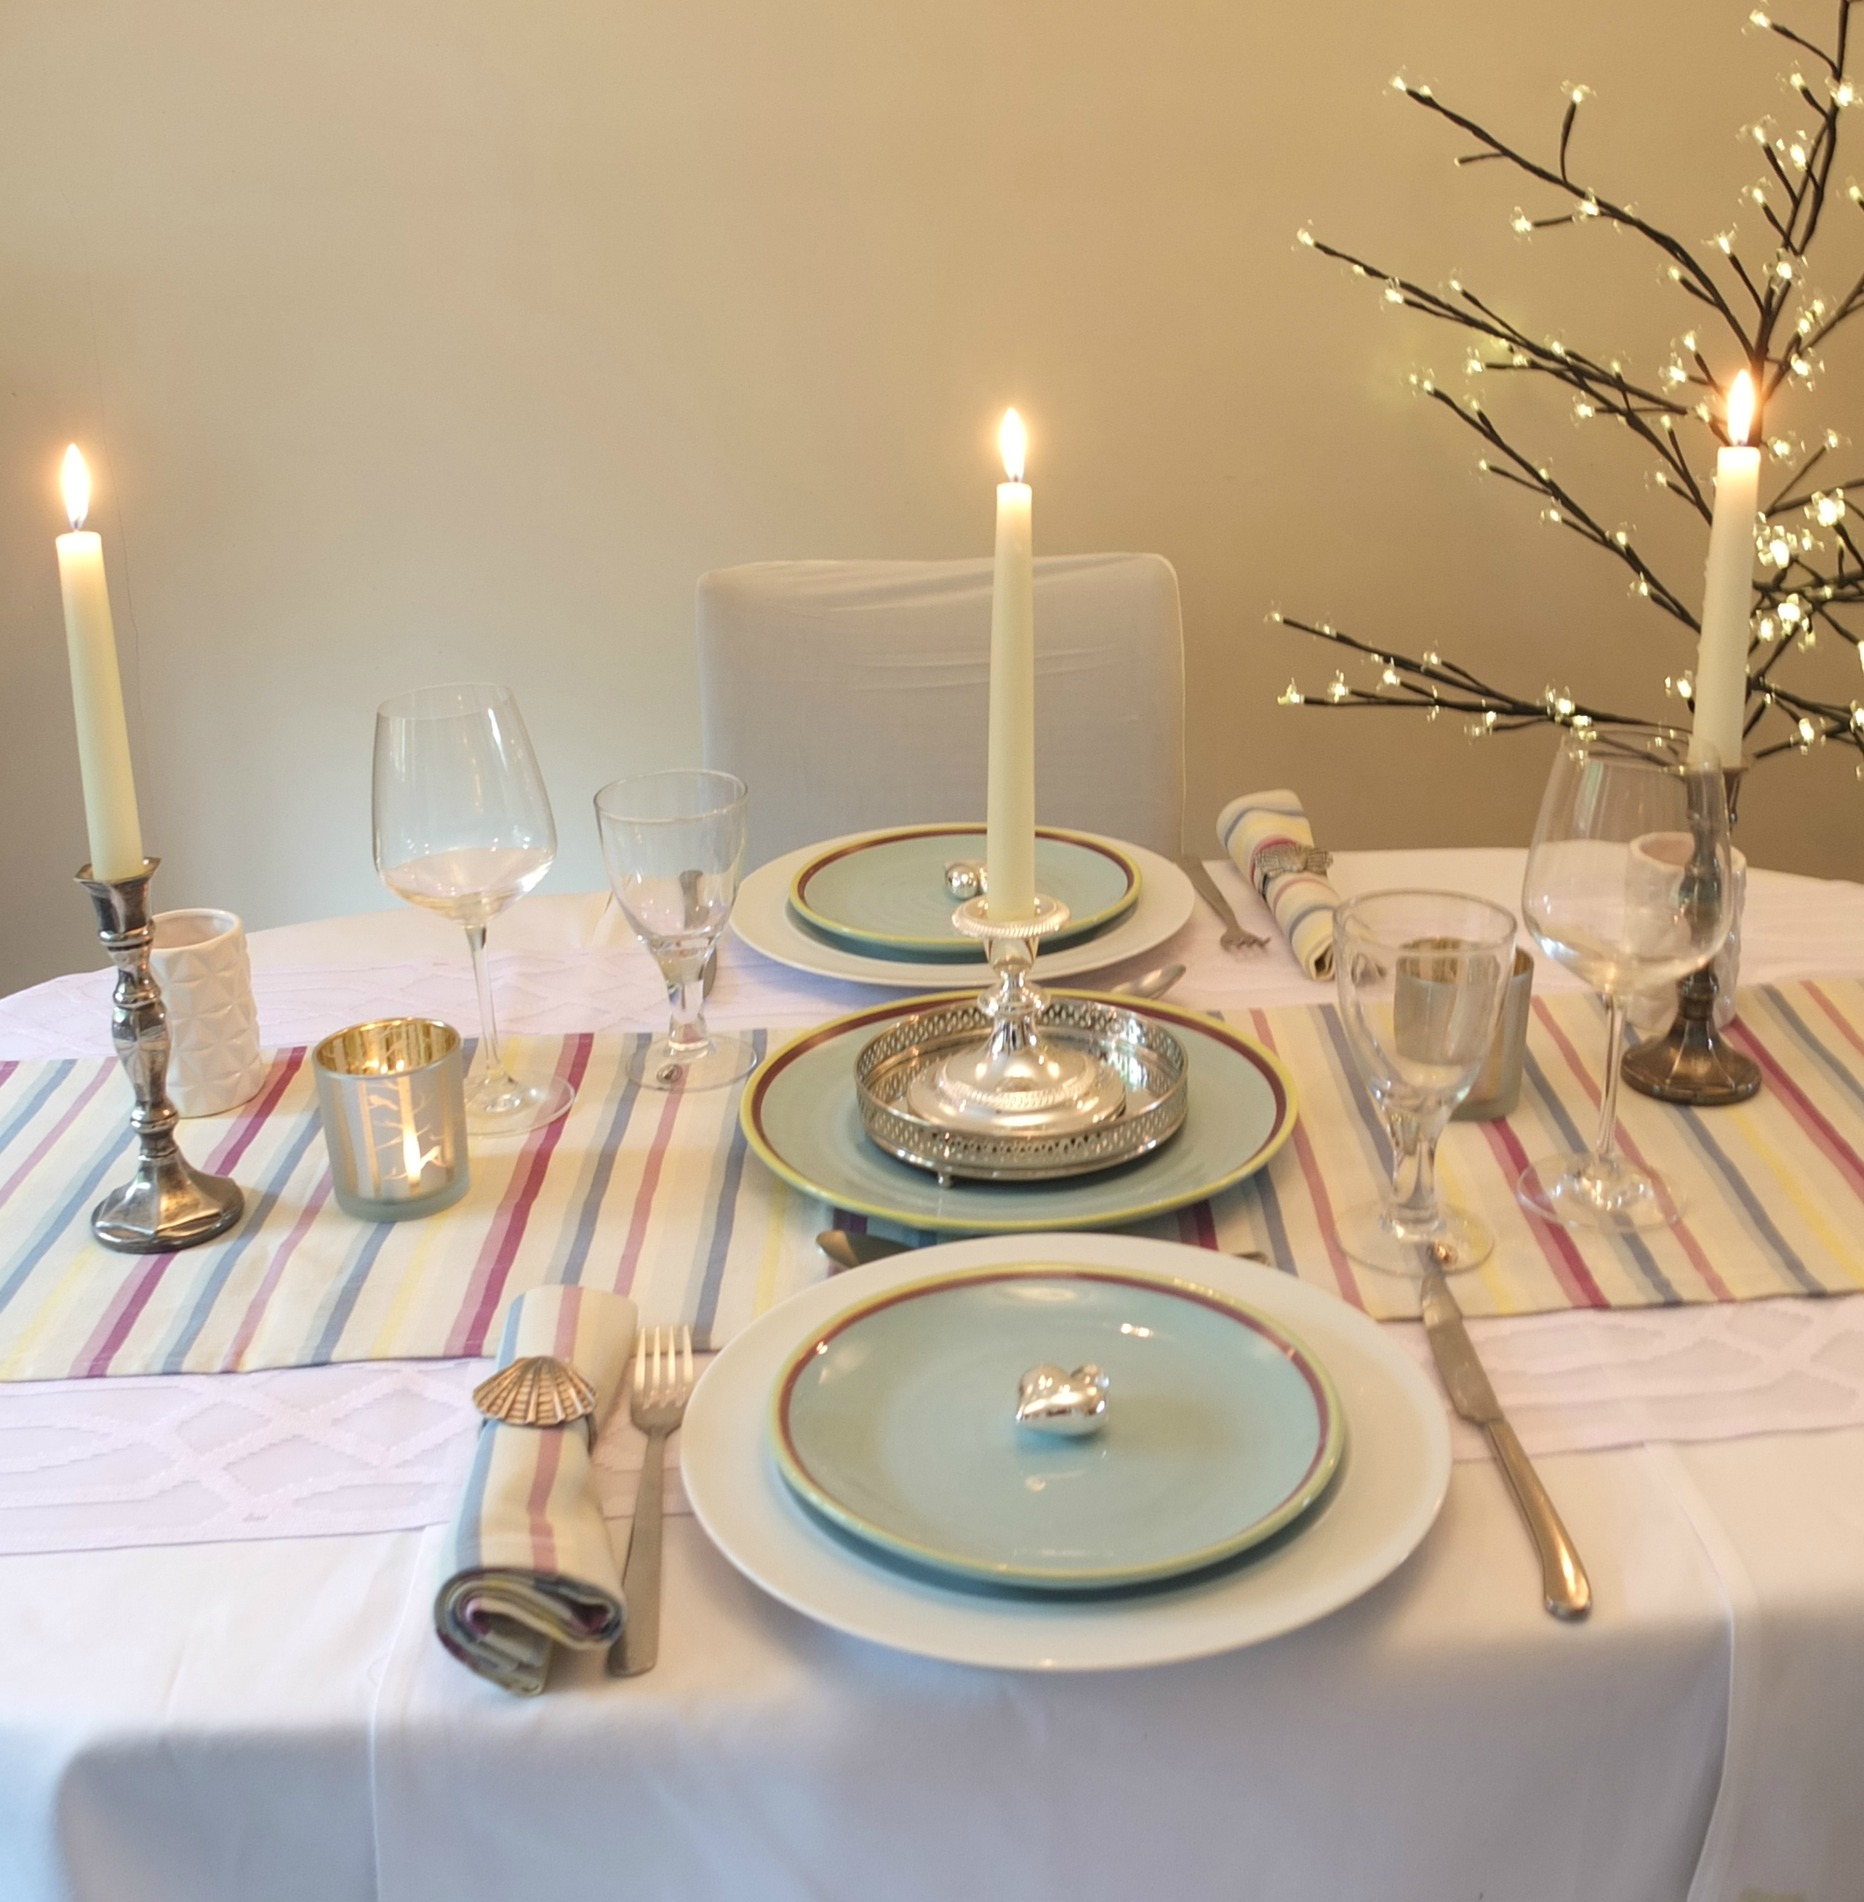 dine in style a romantic dinner for two with duckydora fresh